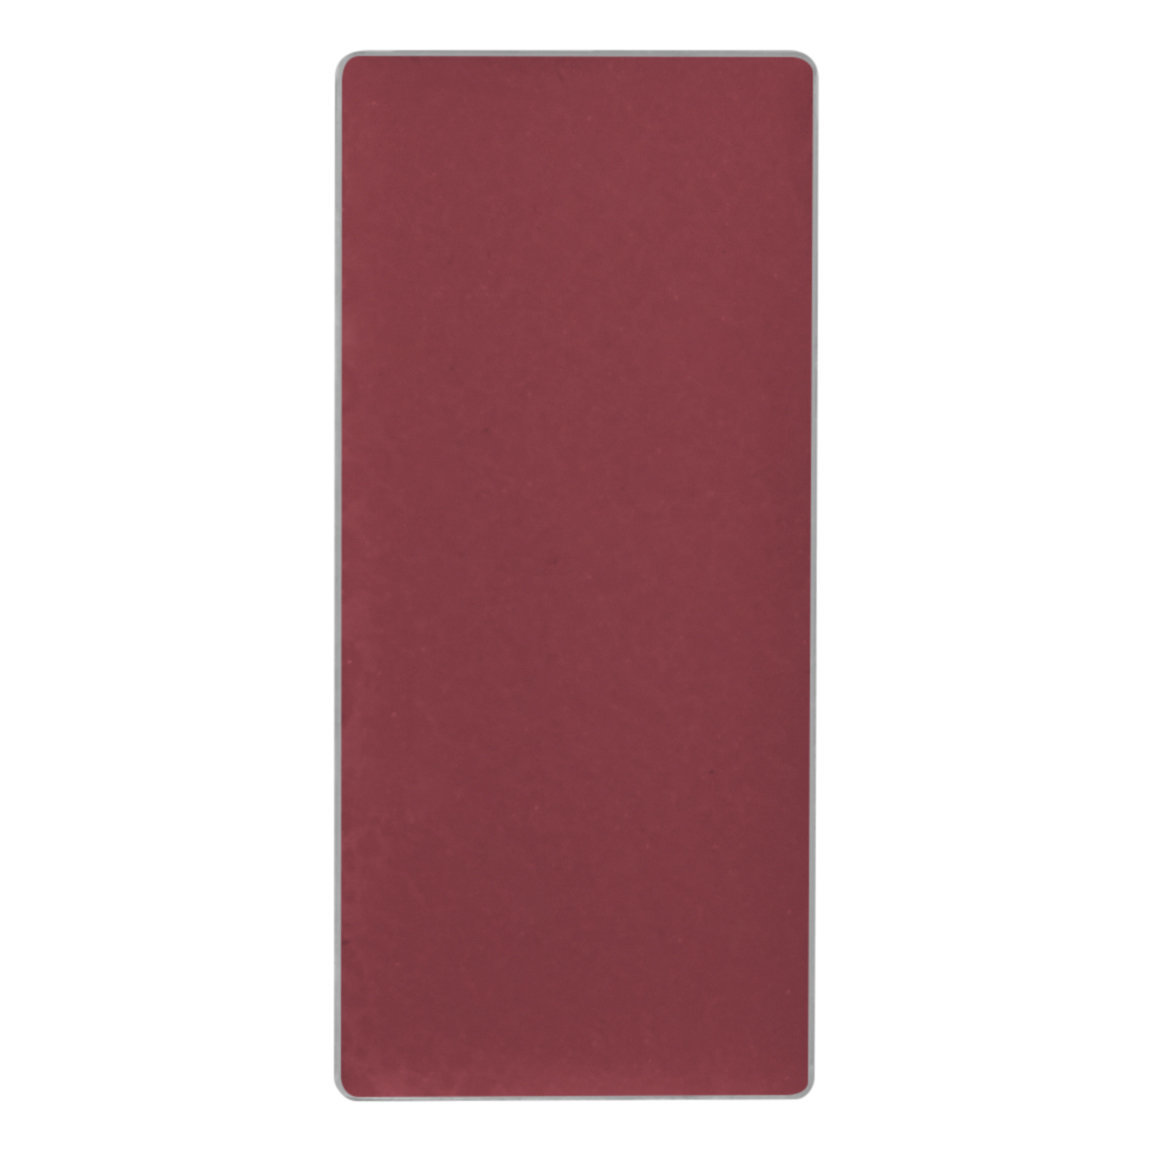 Kjaer Weis Lip Tint Refill Sensuous Plum alternative view 1 - product swatch.